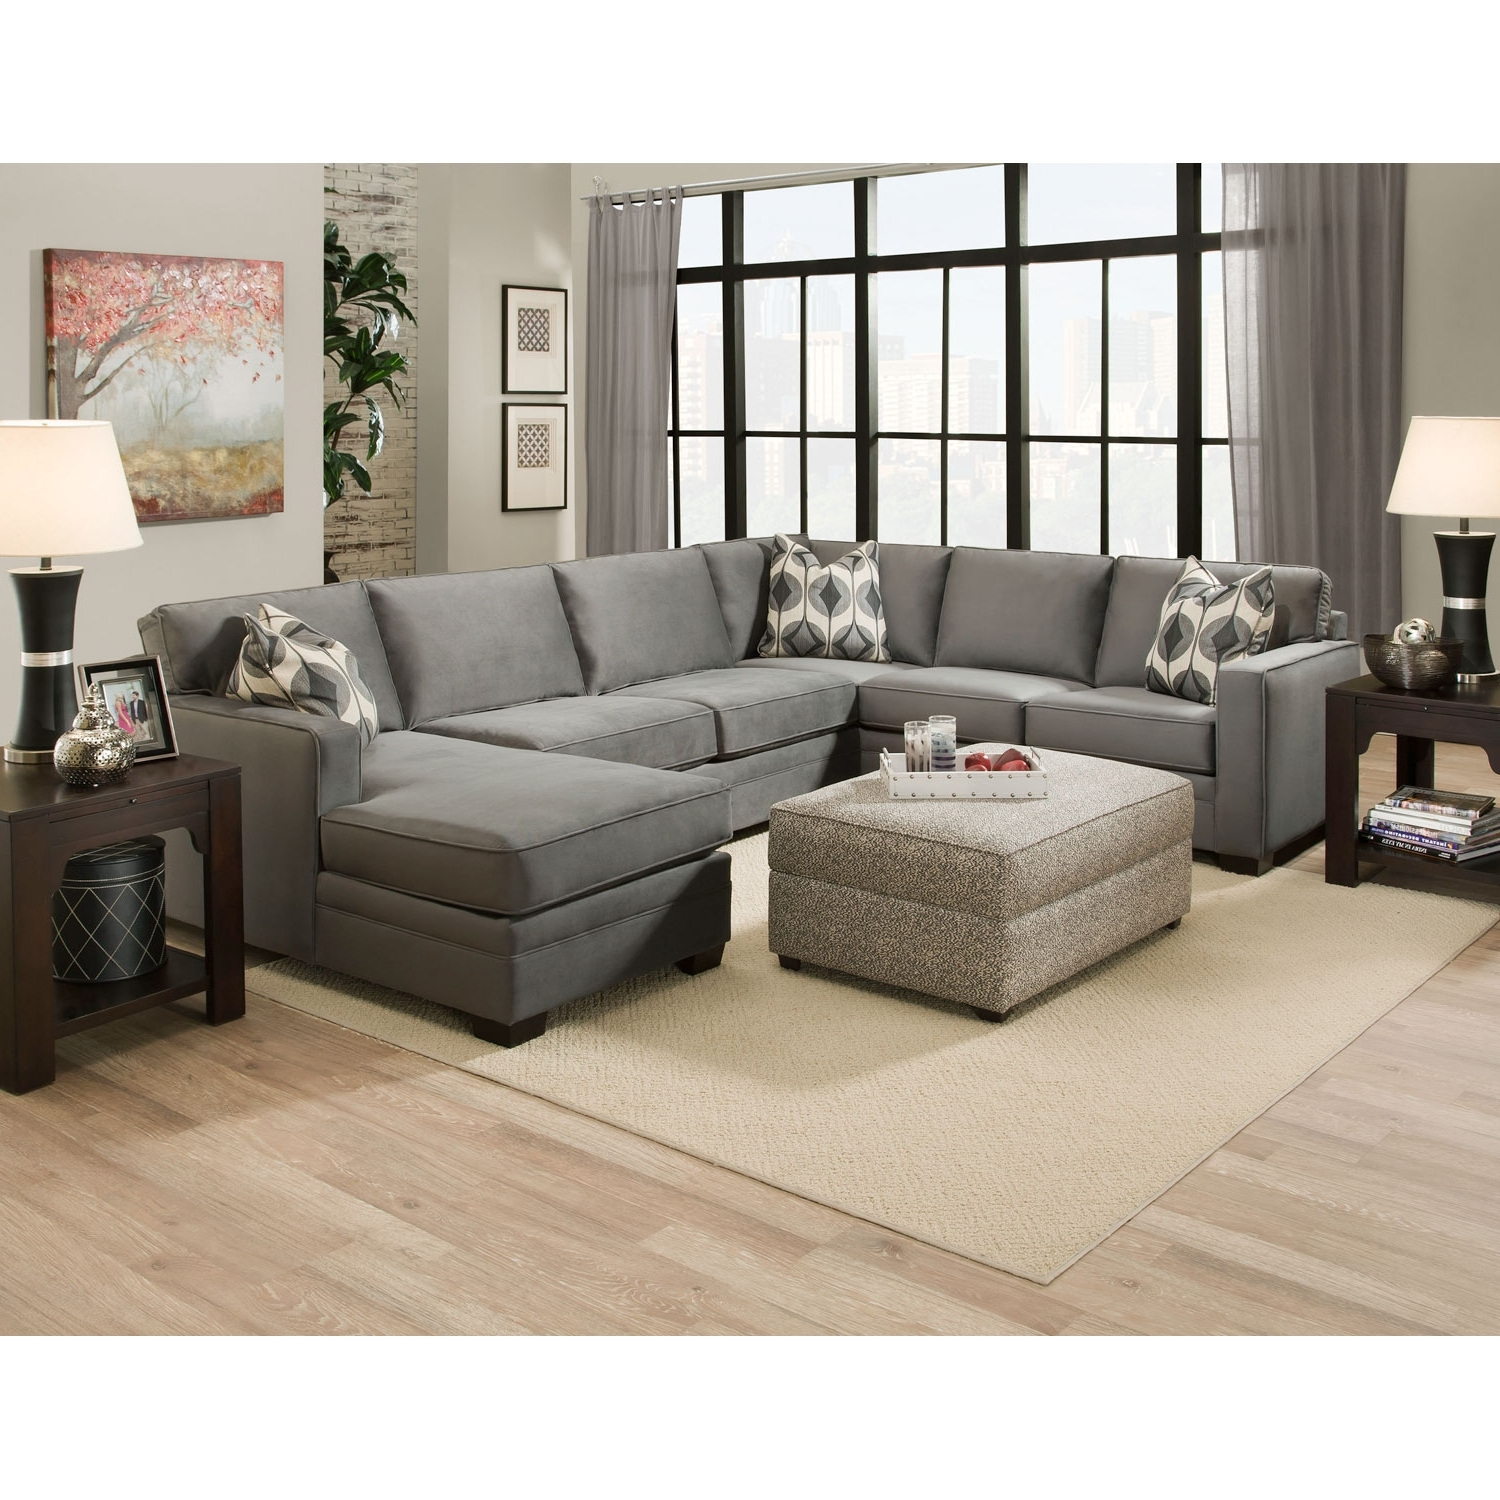 Gray Extra Large U Shaped Sectional Sofa With Chaise And Accent With Regard To Well Known Extra Large Sofas (View 14 of 15)